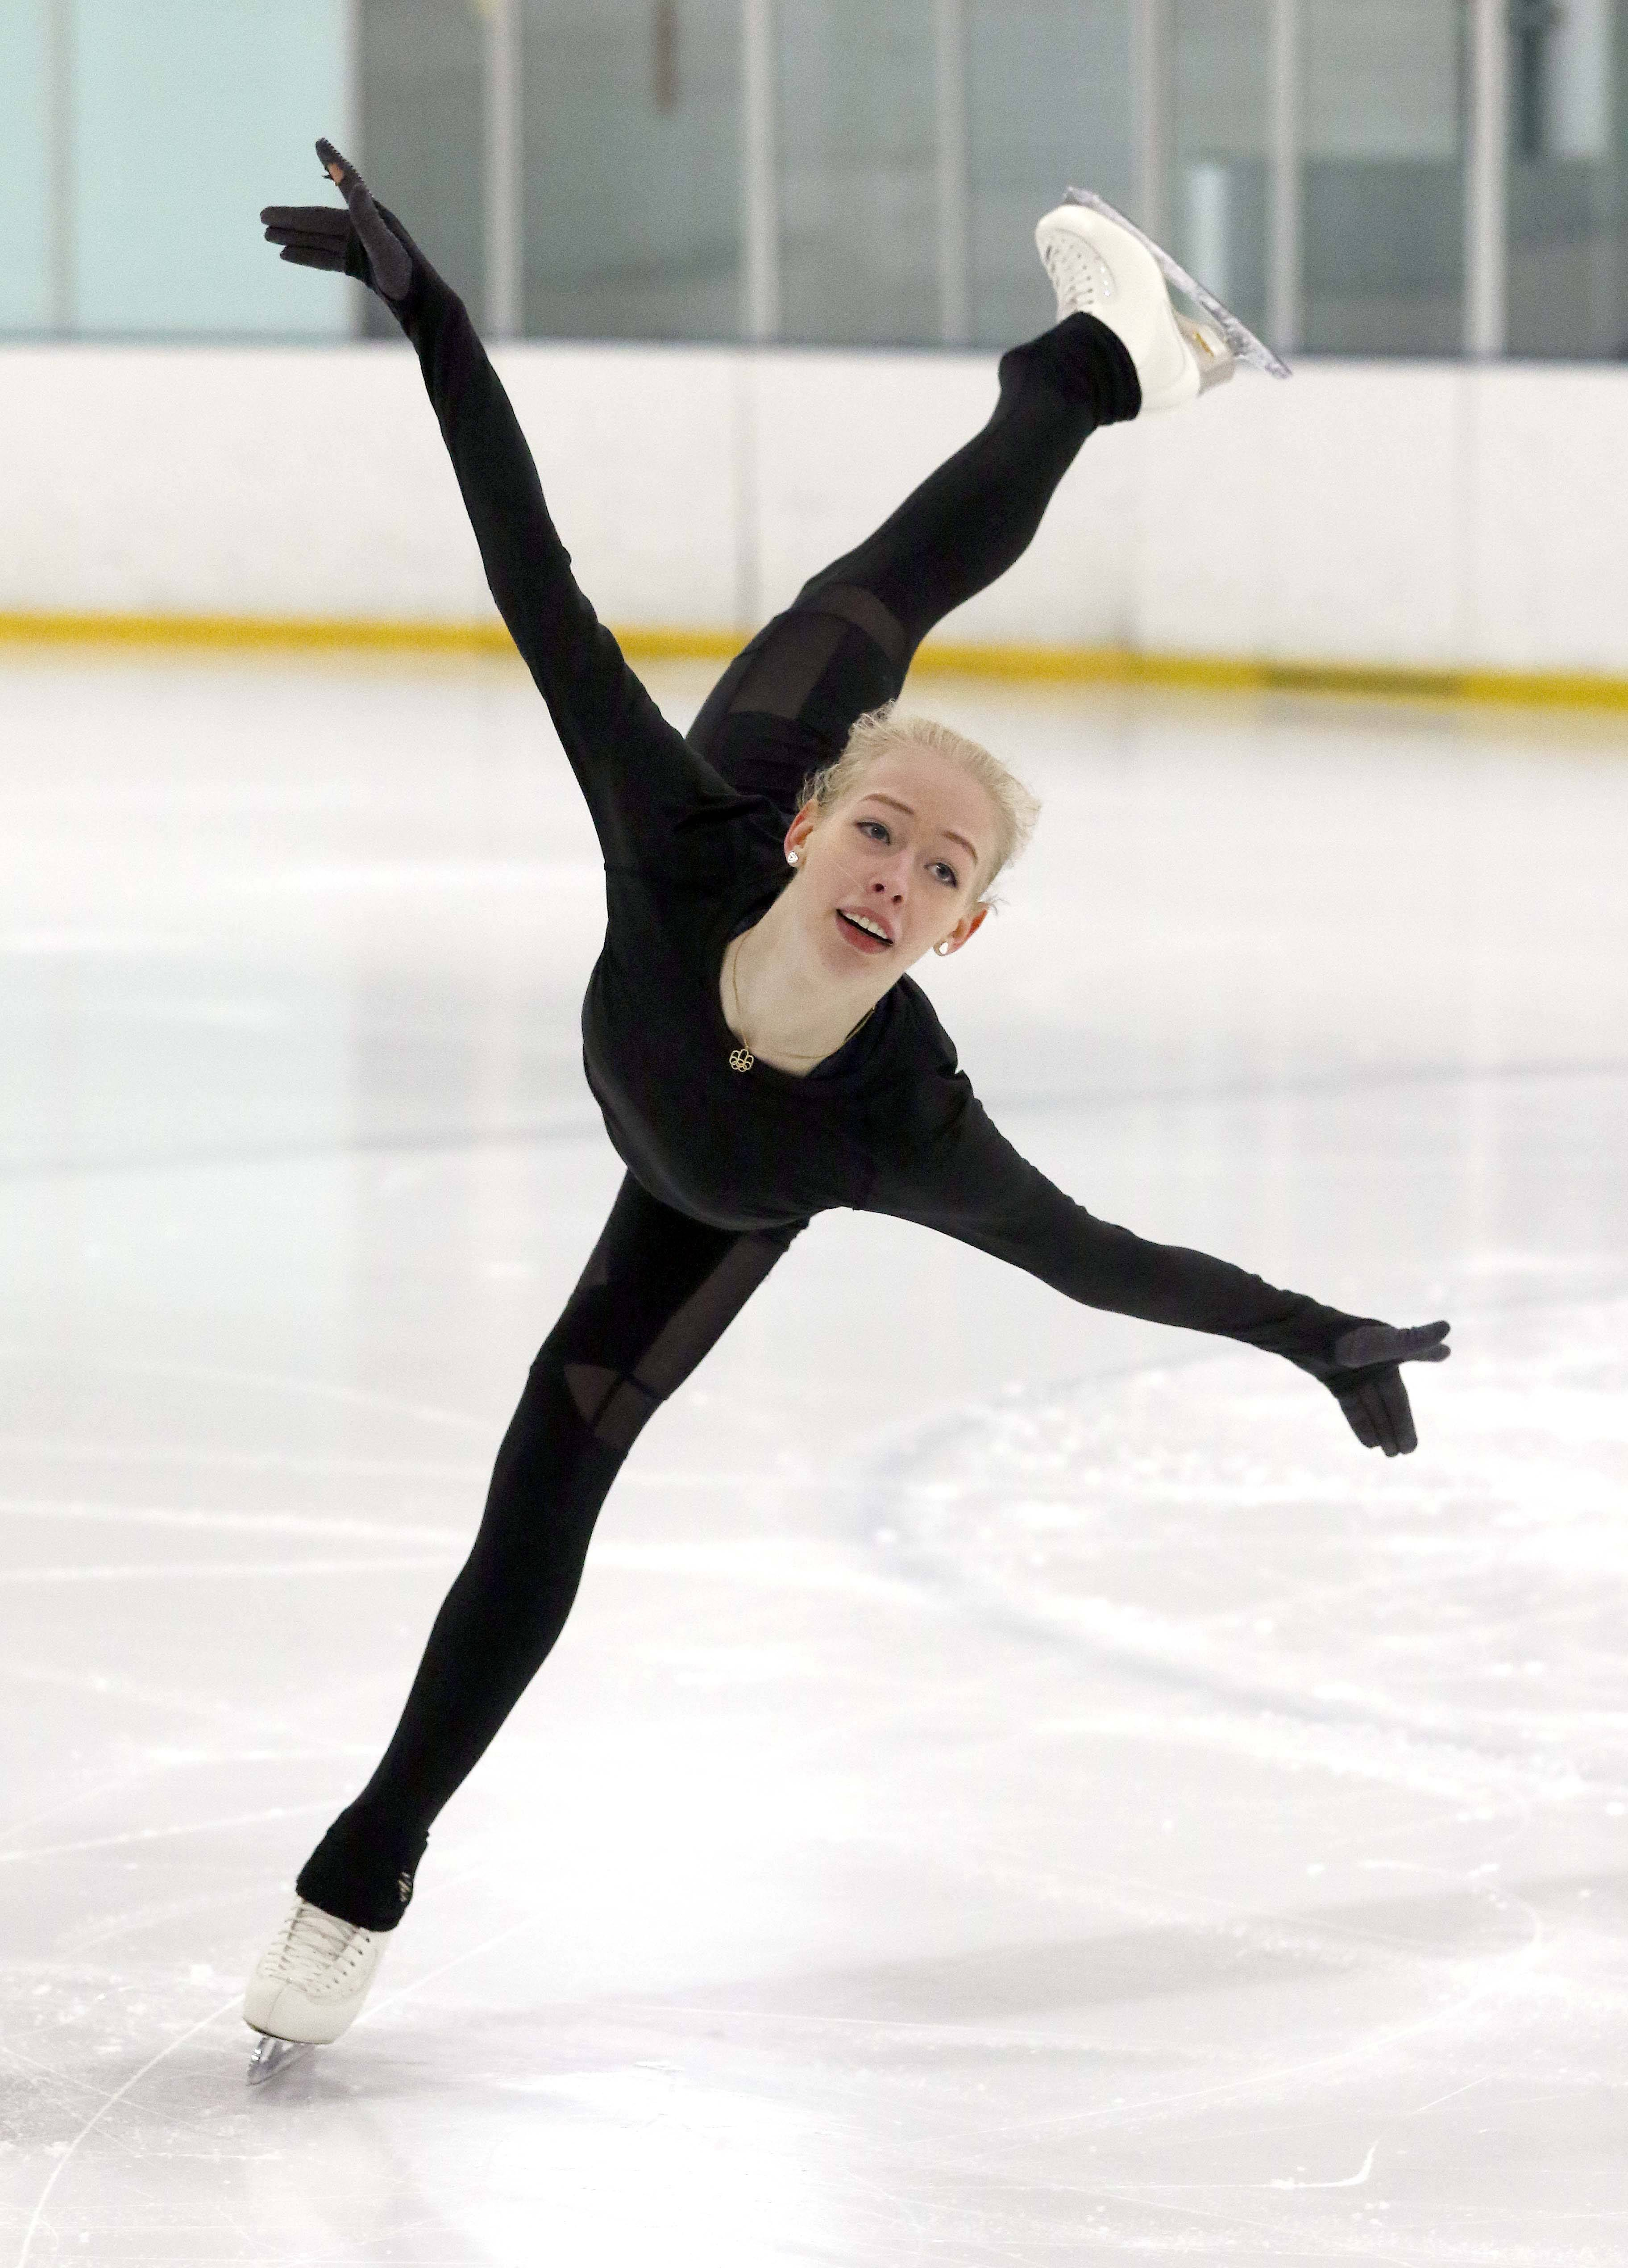 Images: Carpentersville's Bradie Tennell prepares for the PyeongChang Olympics